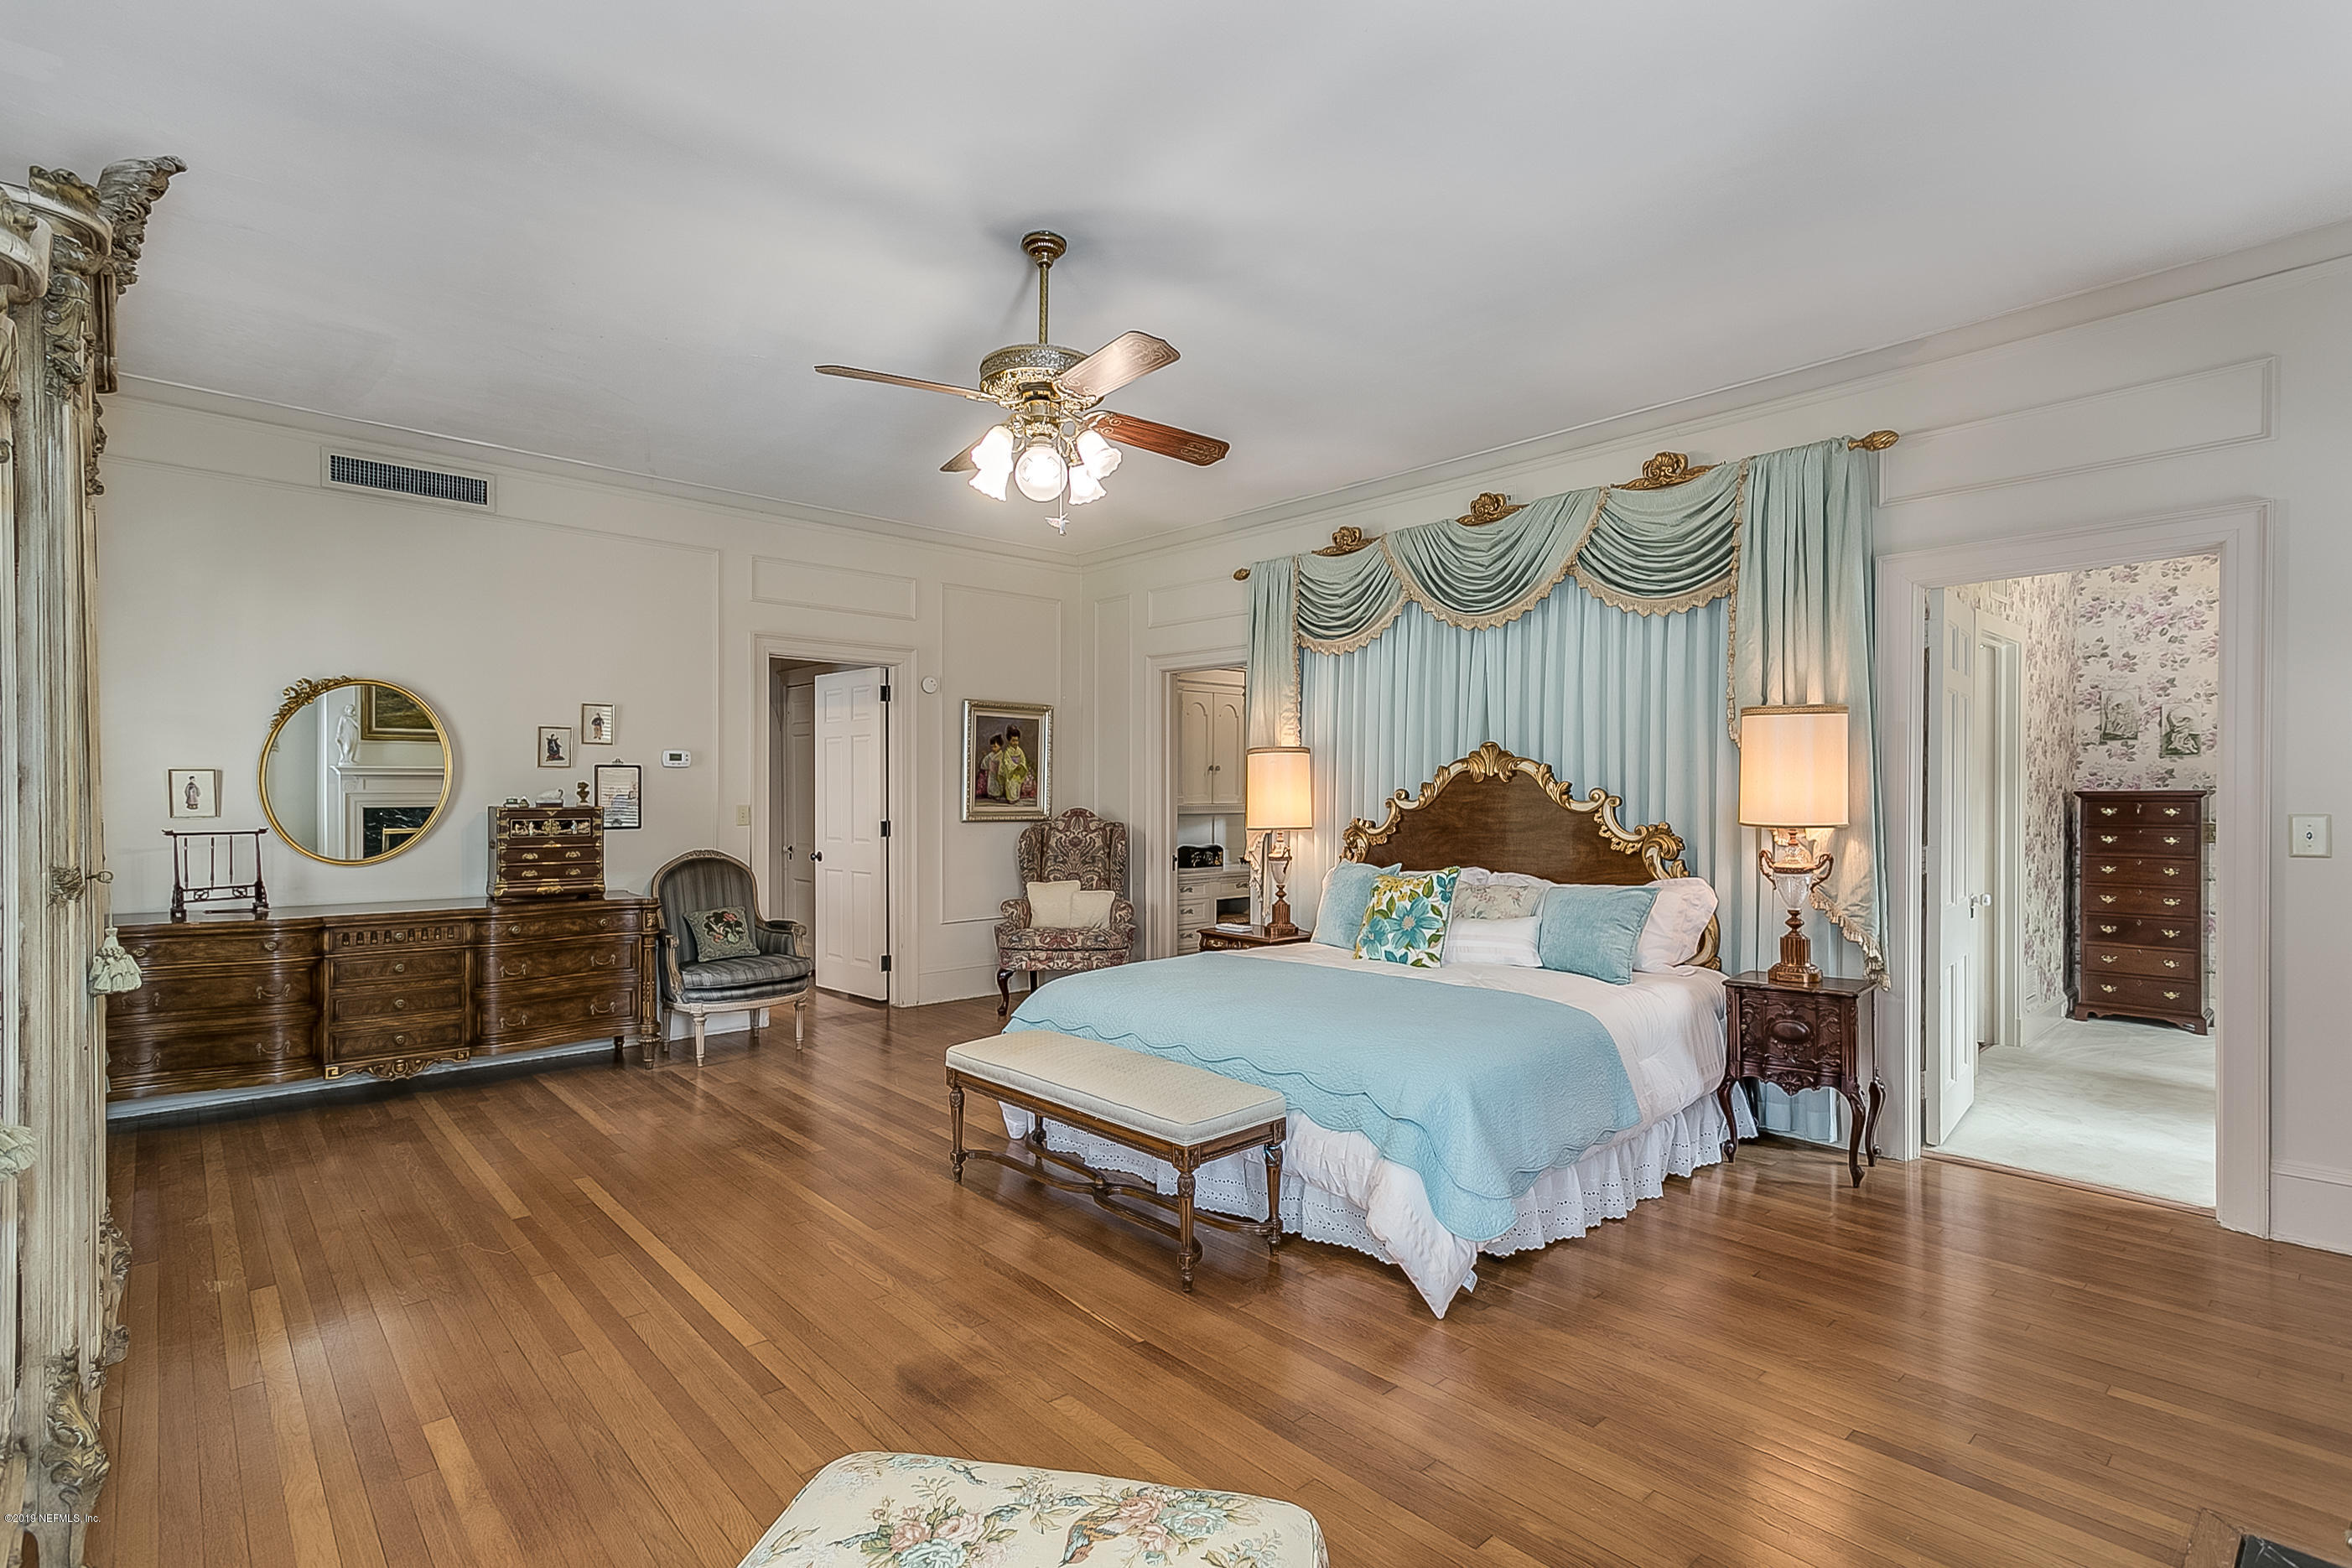 700 OLD GROVE, JACKSONVILLE, FLORIDA 32207, 6 Bedrooms Bedrooms, ,6 BathroomsBathrooms,Residential - single family,For sale,OLD GROVE,982204